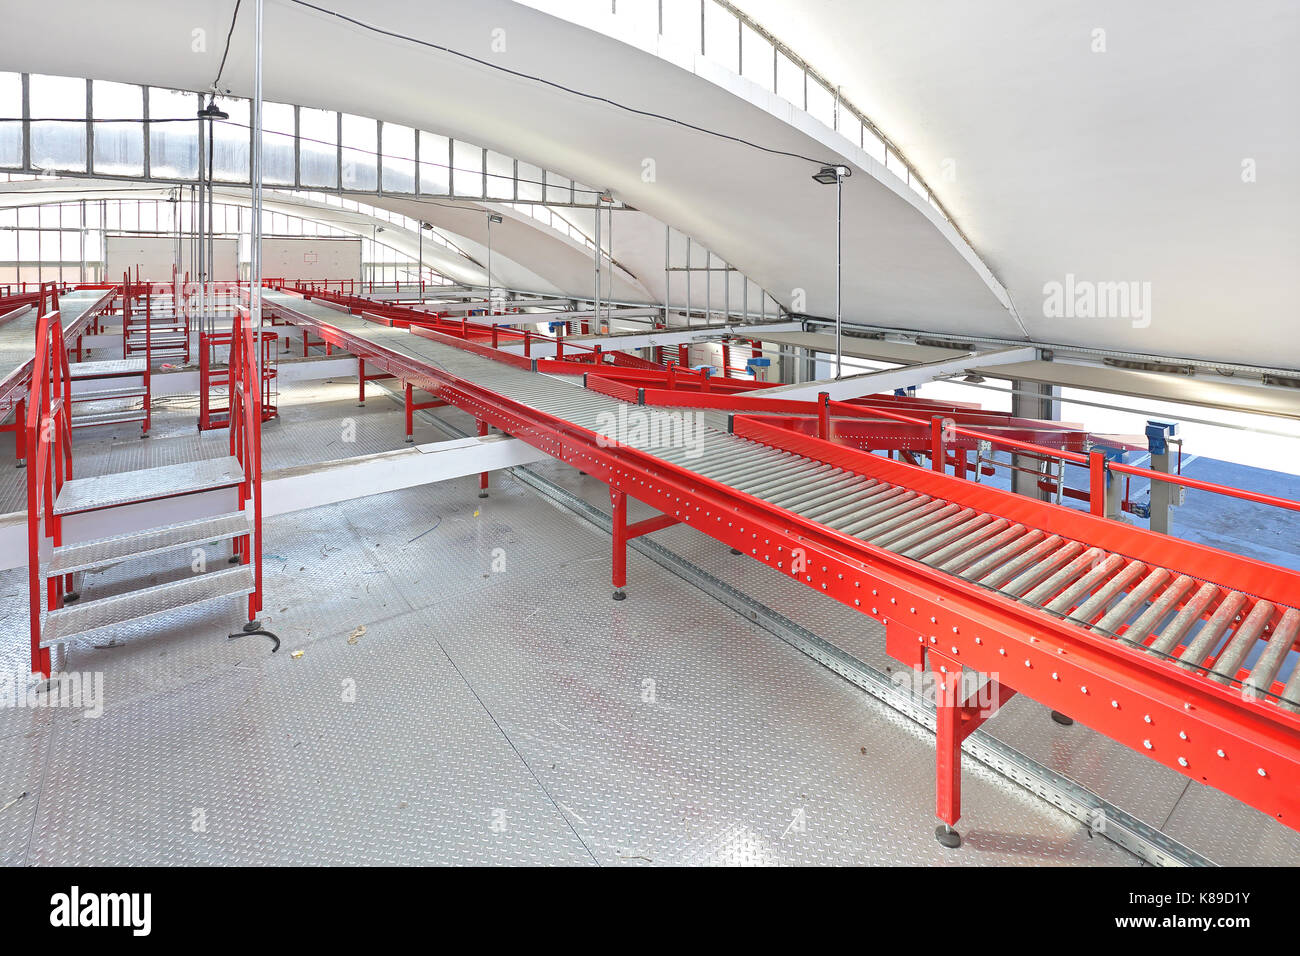 Conveyor Belt Distribution and Delivery Warehouse - Stock Image